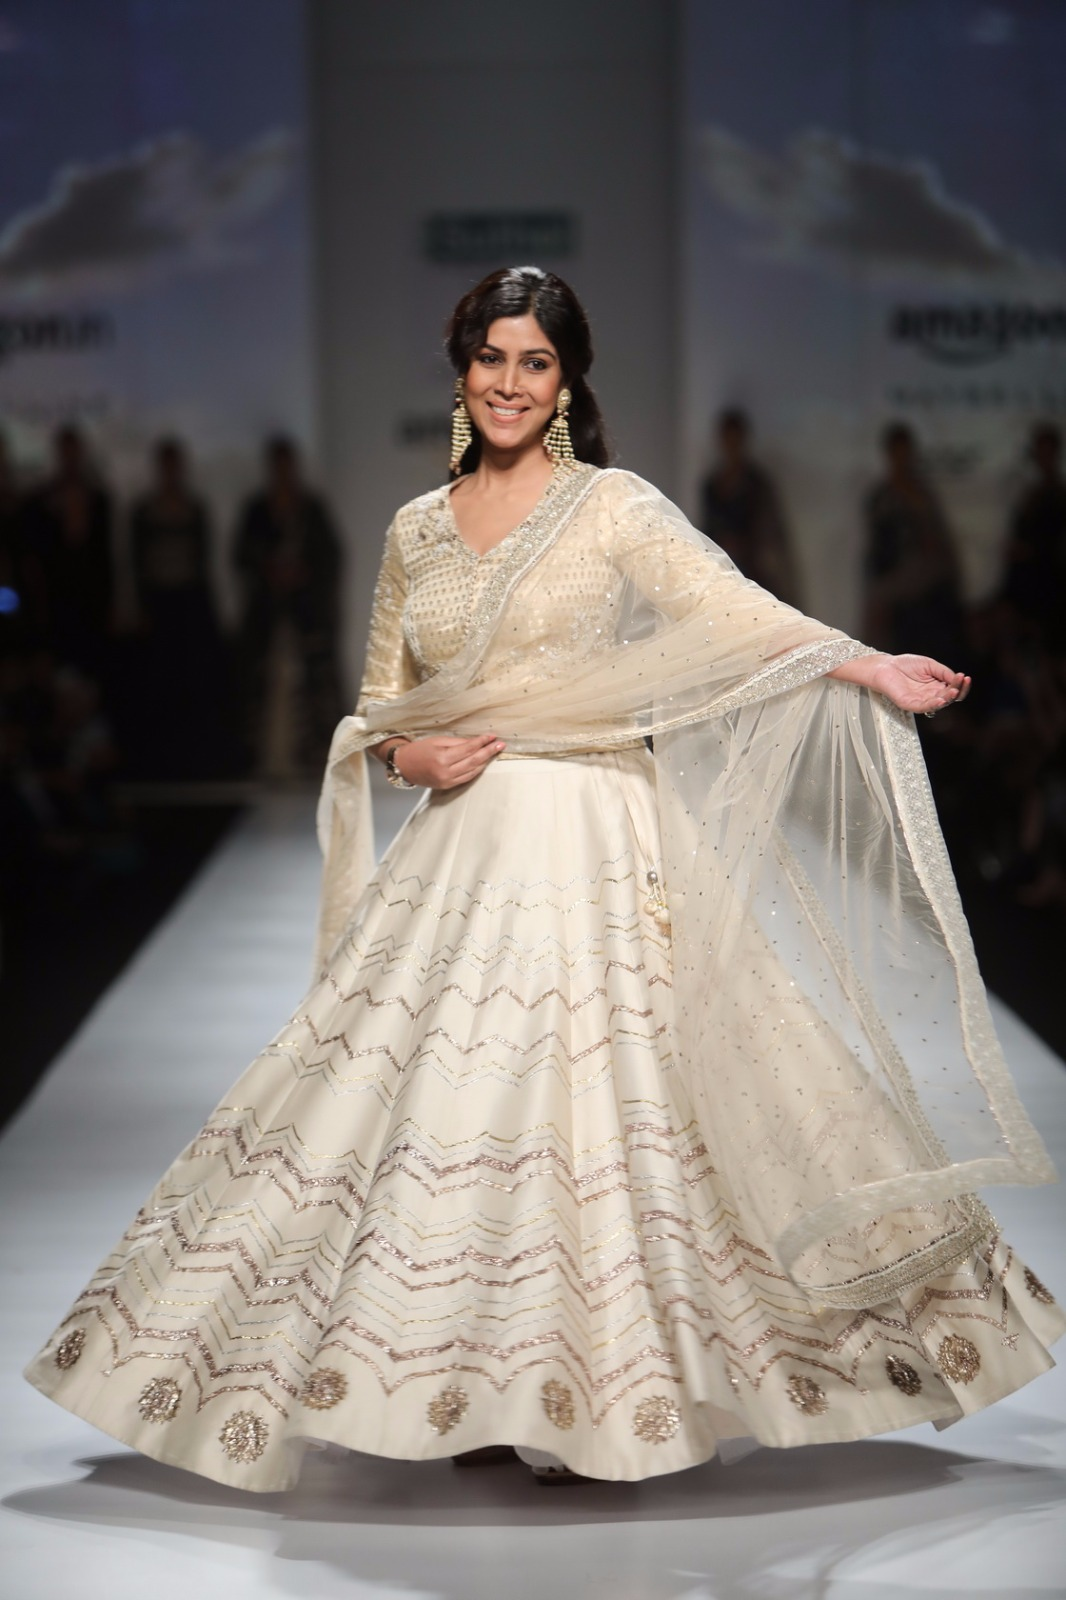 http://www.talksassy.com/wp-content/uploads/2017/03/Amazon-India-Fashion-Week-Autumn-Winter-2017-26.jpg